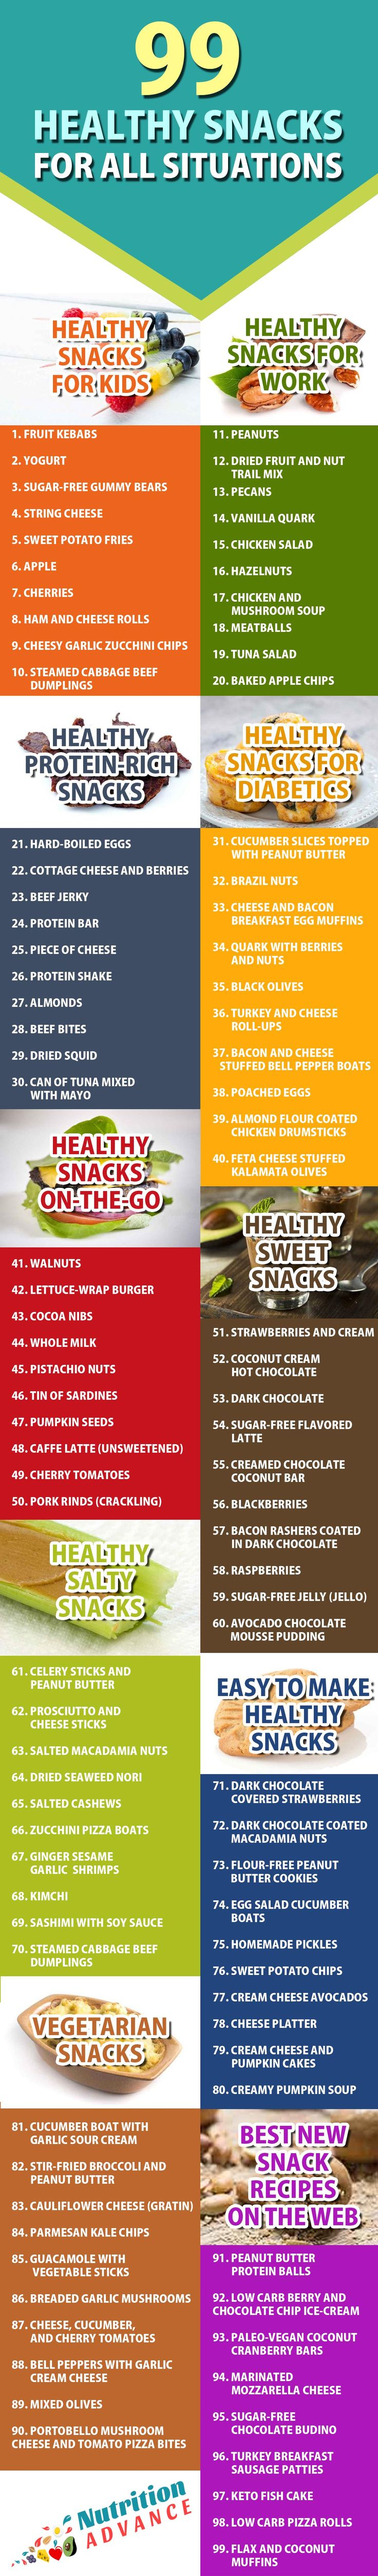 99 Healthy Snacks For All Occasions | Here are 99 low carb snacks that are sugar-free, contain on grains or oils, and are based around whole foods. The snacks are split into ten categories - healthy snacks for kids, snacks for work, vegetarian snacks, snacks on the go, snacks for diabetics, sweet snacks, salty snacks, protein-rich snacks, easy to make snacks, and the best new snack recipes online! Read the full article at: http://nutritionadvance.com/healthy-snacks